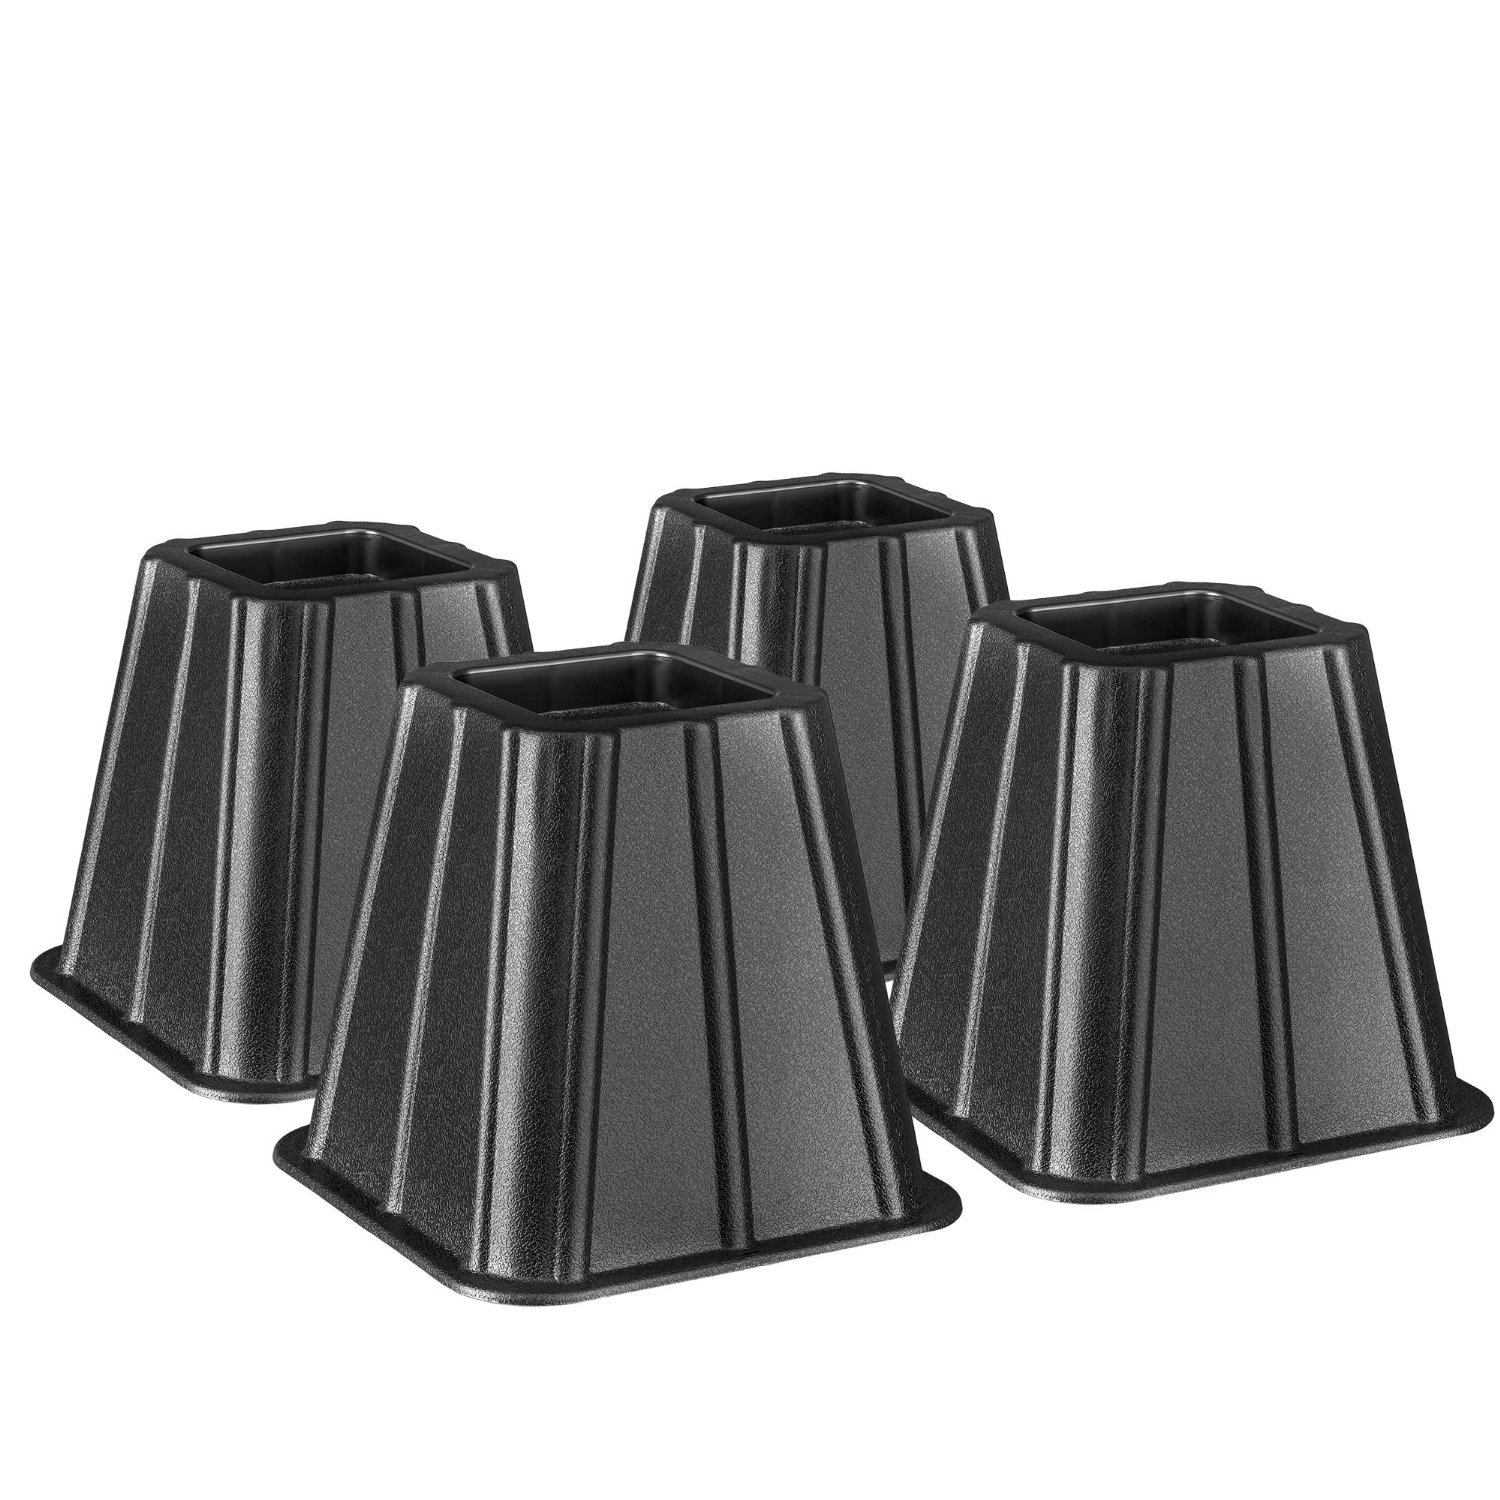 Greenco Super Strong Furniture Riser, Great for Under Bed Storage-Pack of 4 Homeco GRC0086A